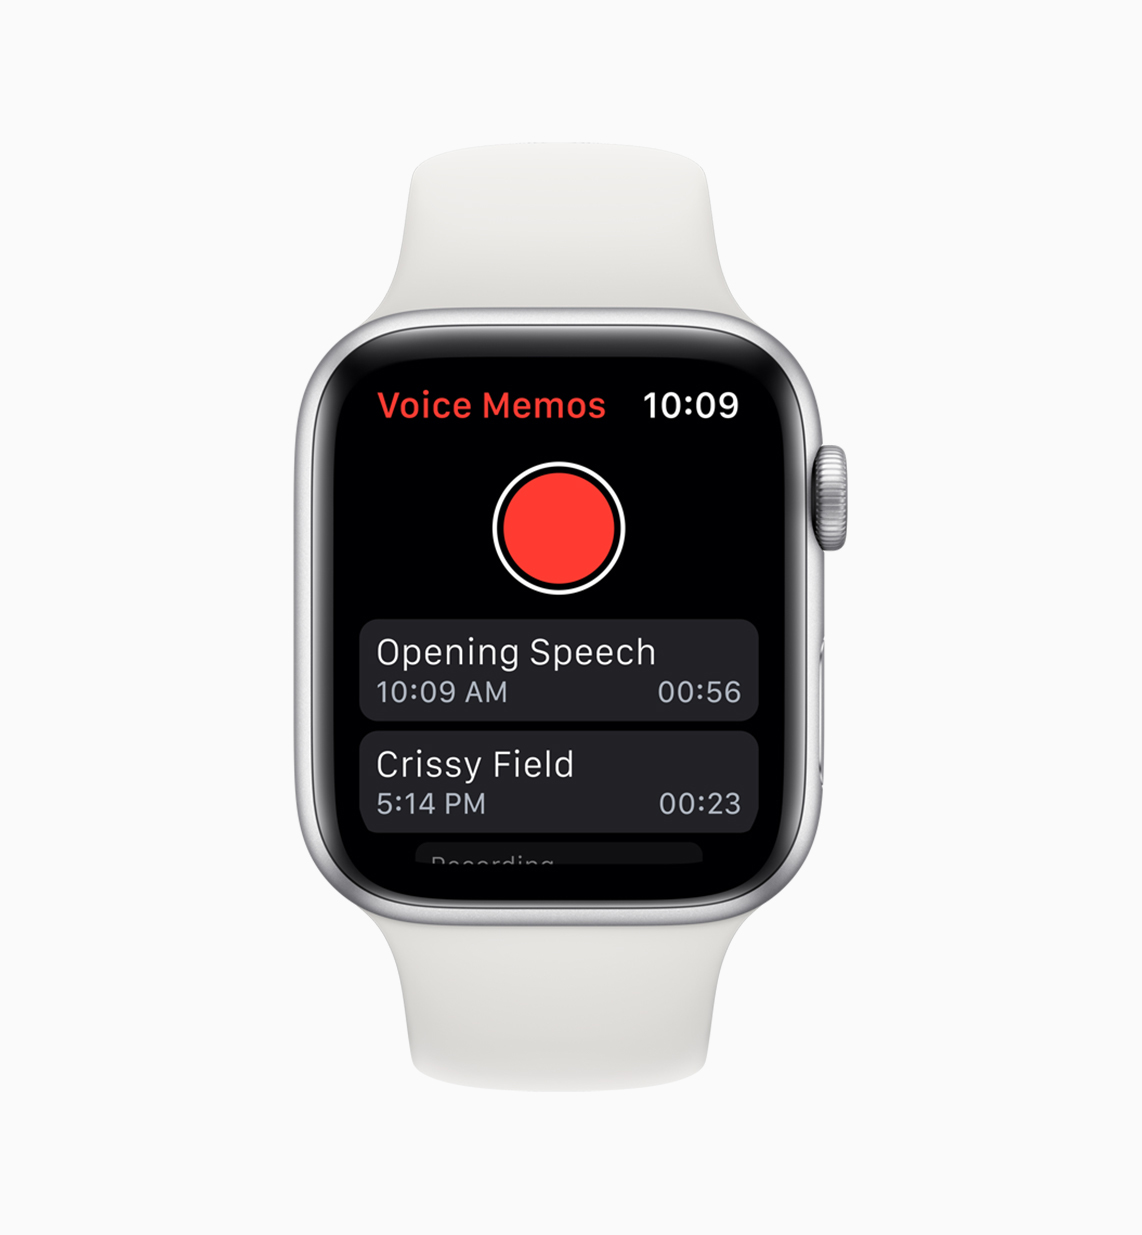 watchOS 6 introduces popular apps like Voice Memos